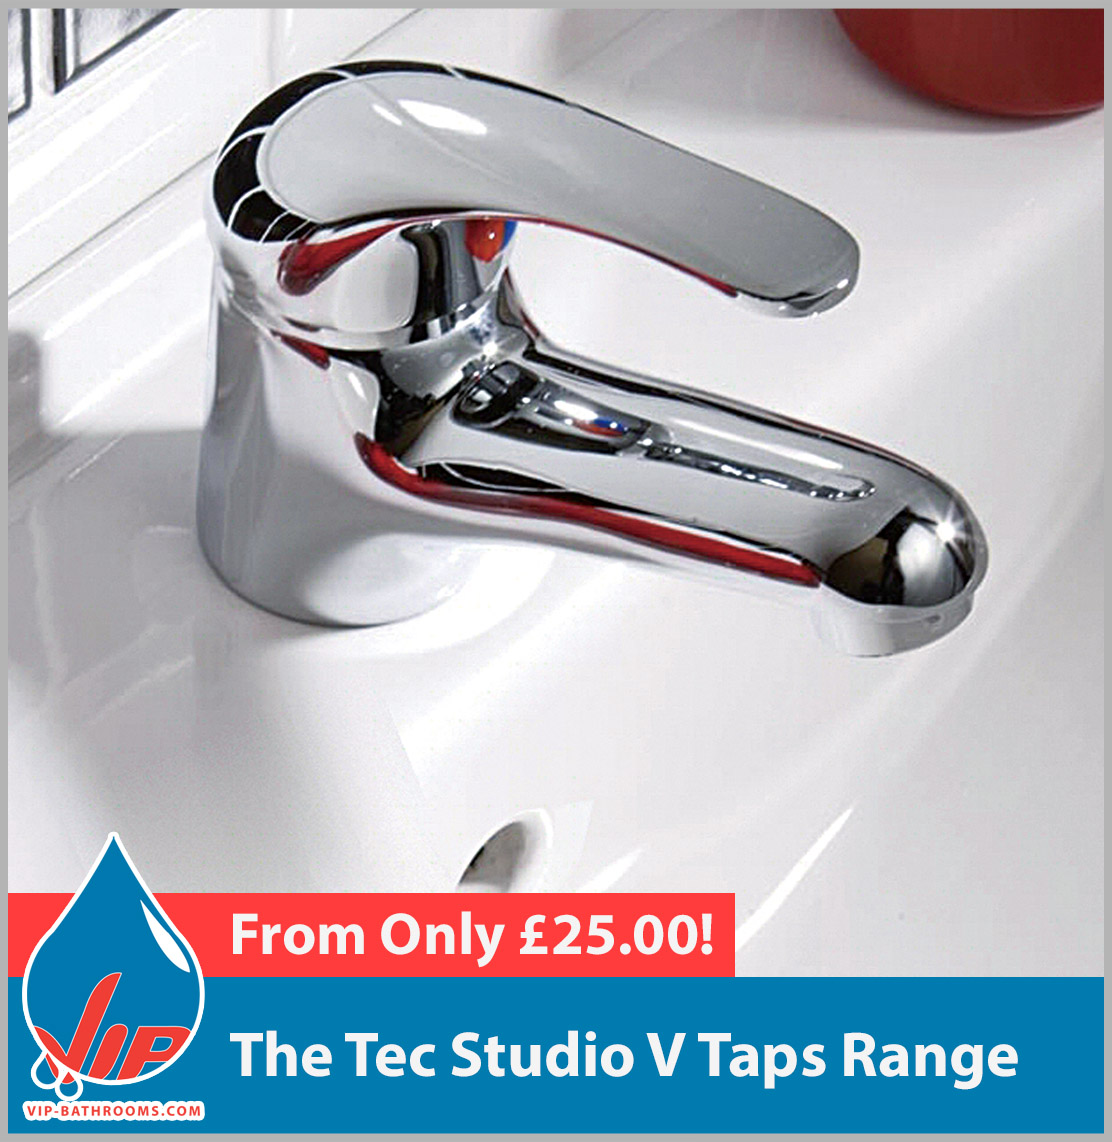 Click here to view the Tec Studio V range of high quality designer Bathroom Taps